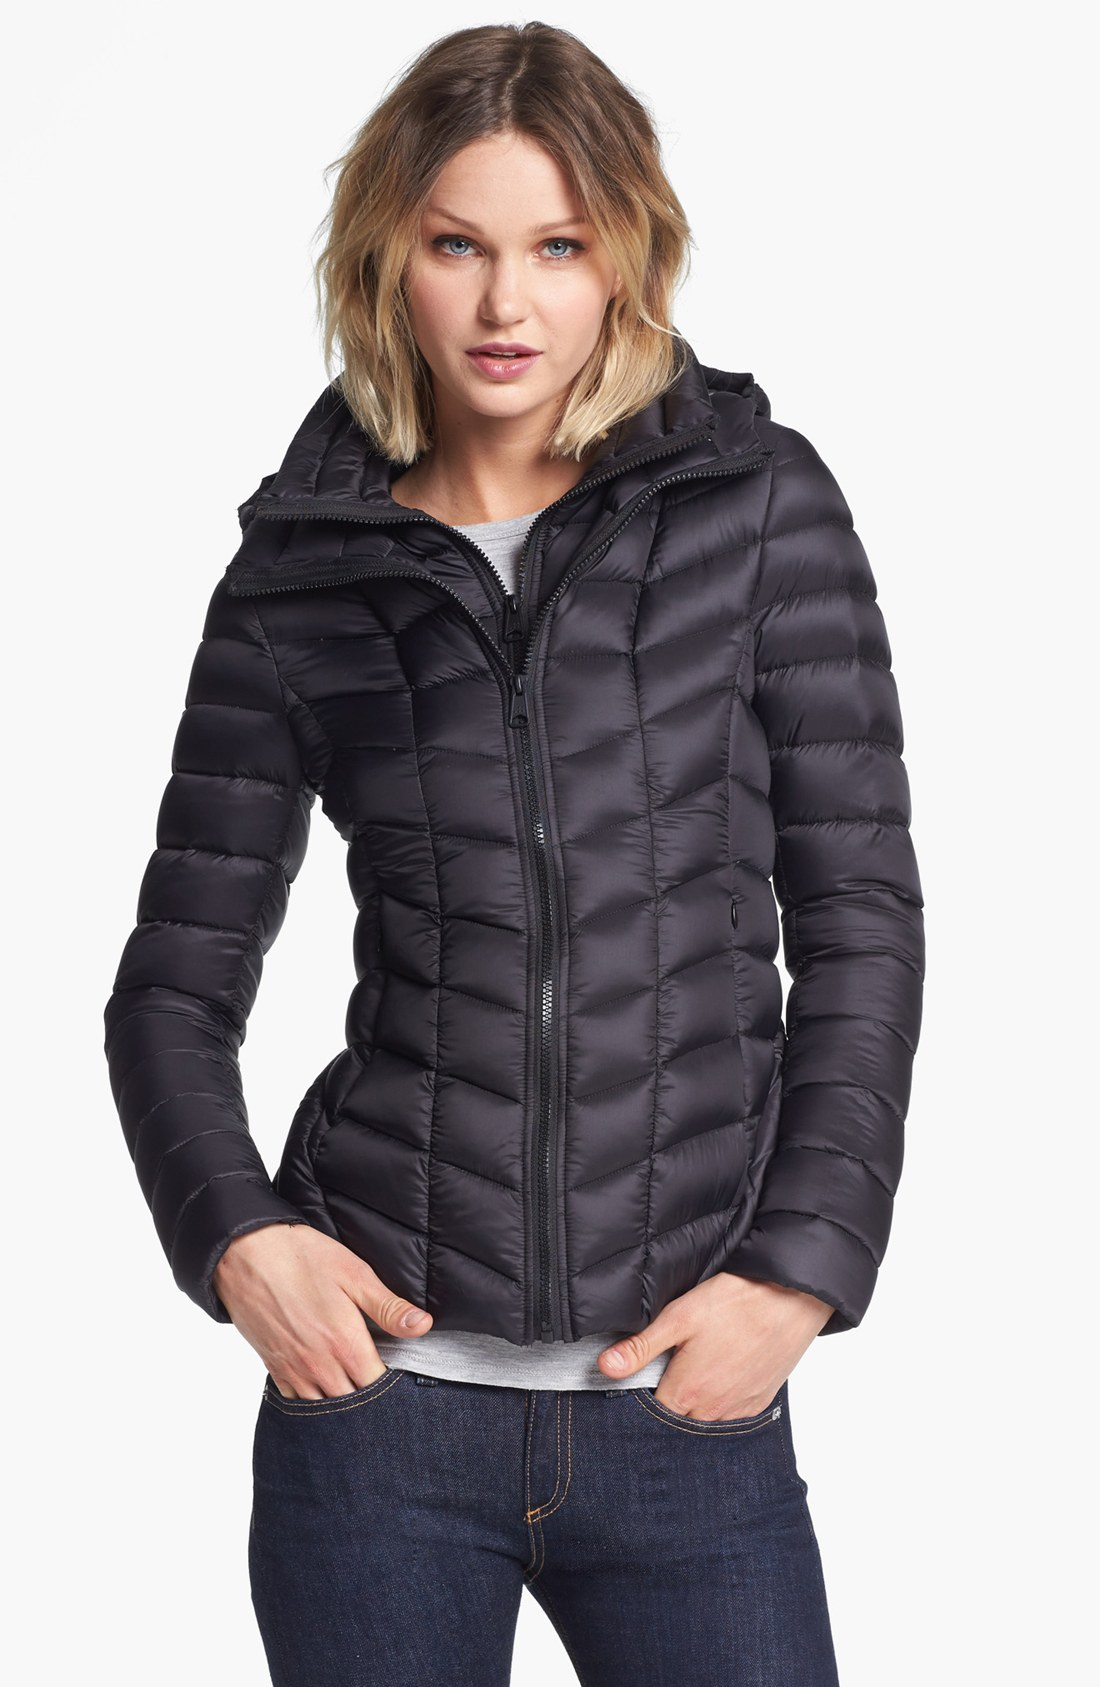 Soia & kyo Hooded Packable Down Jacket with Front Insert in Black ...